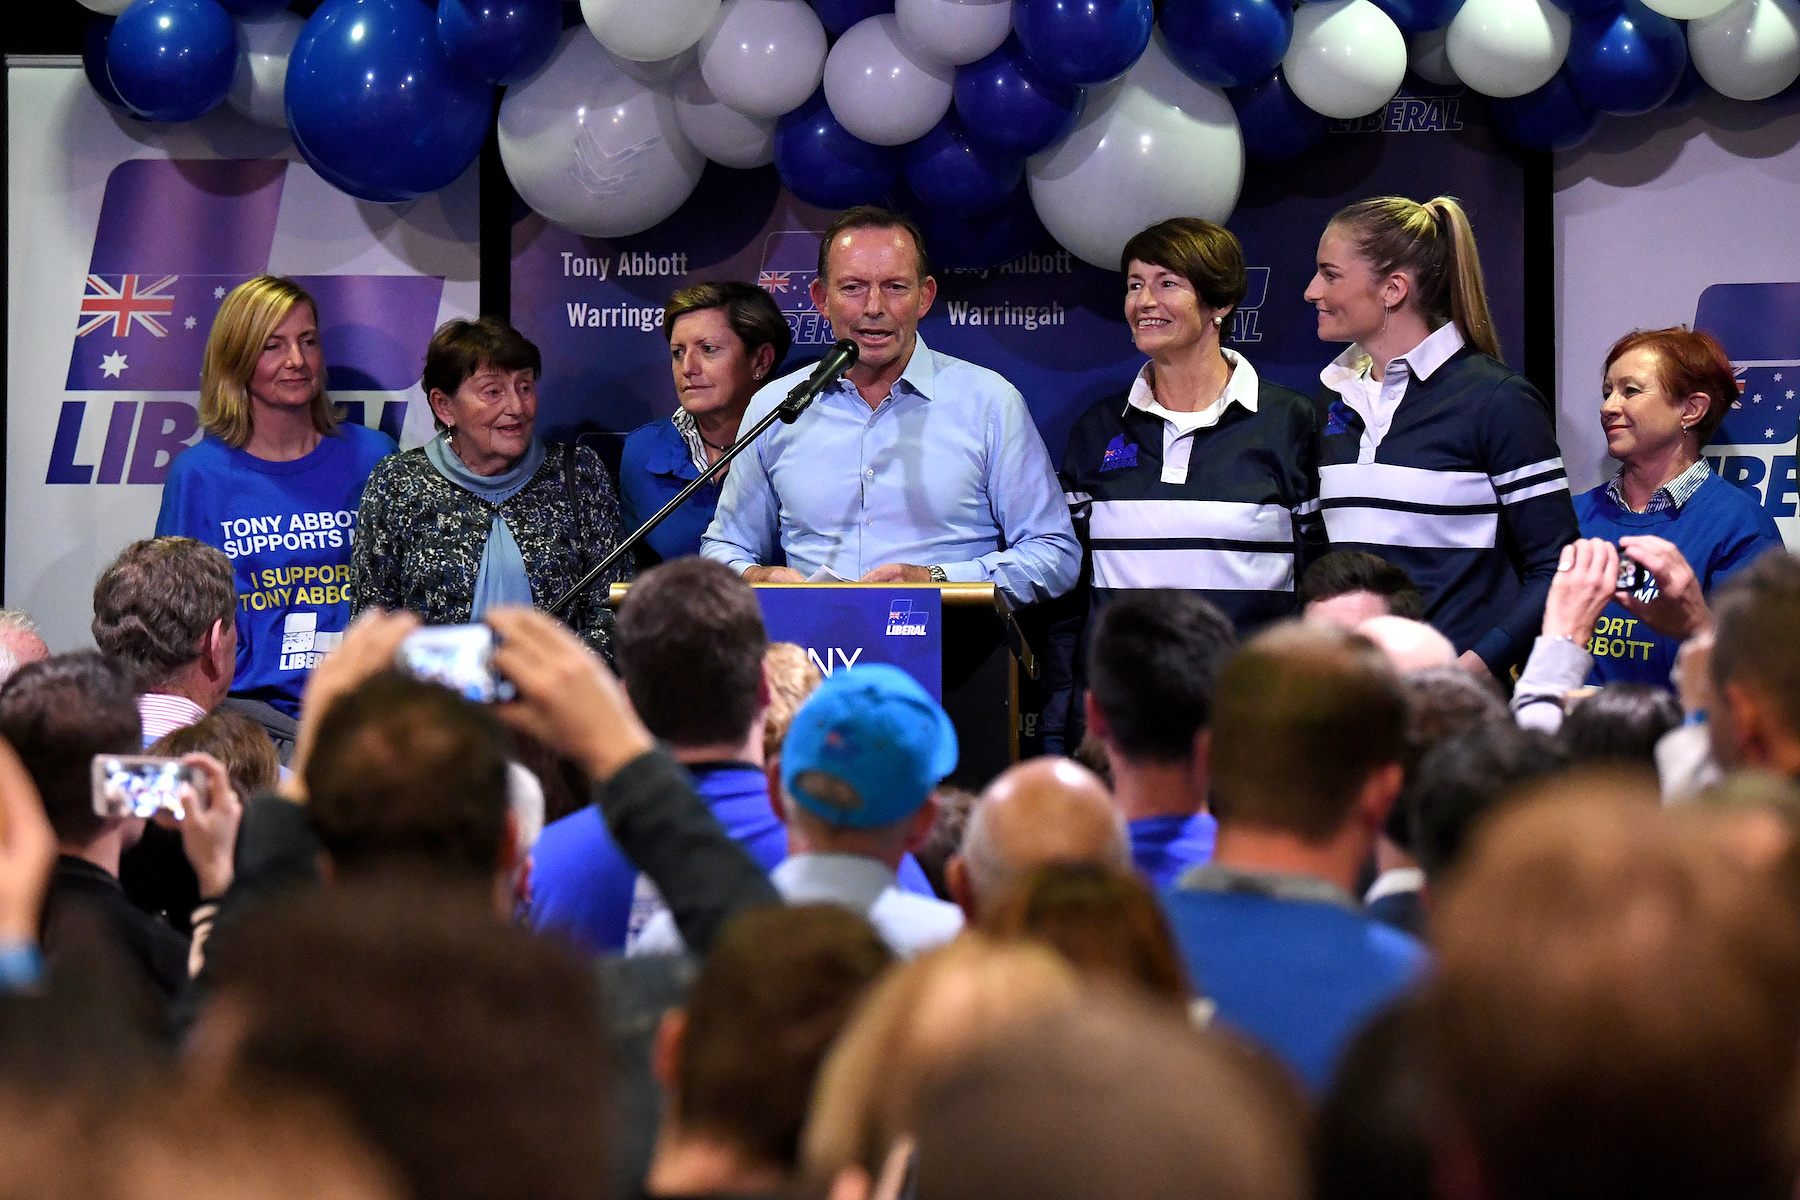 Australia's former Prime Minister and Warringah Liberal candidate Tony Abbott is joined on stage by family members after conceding defeat at Manly Leagues Club in Brookvale, Sydney